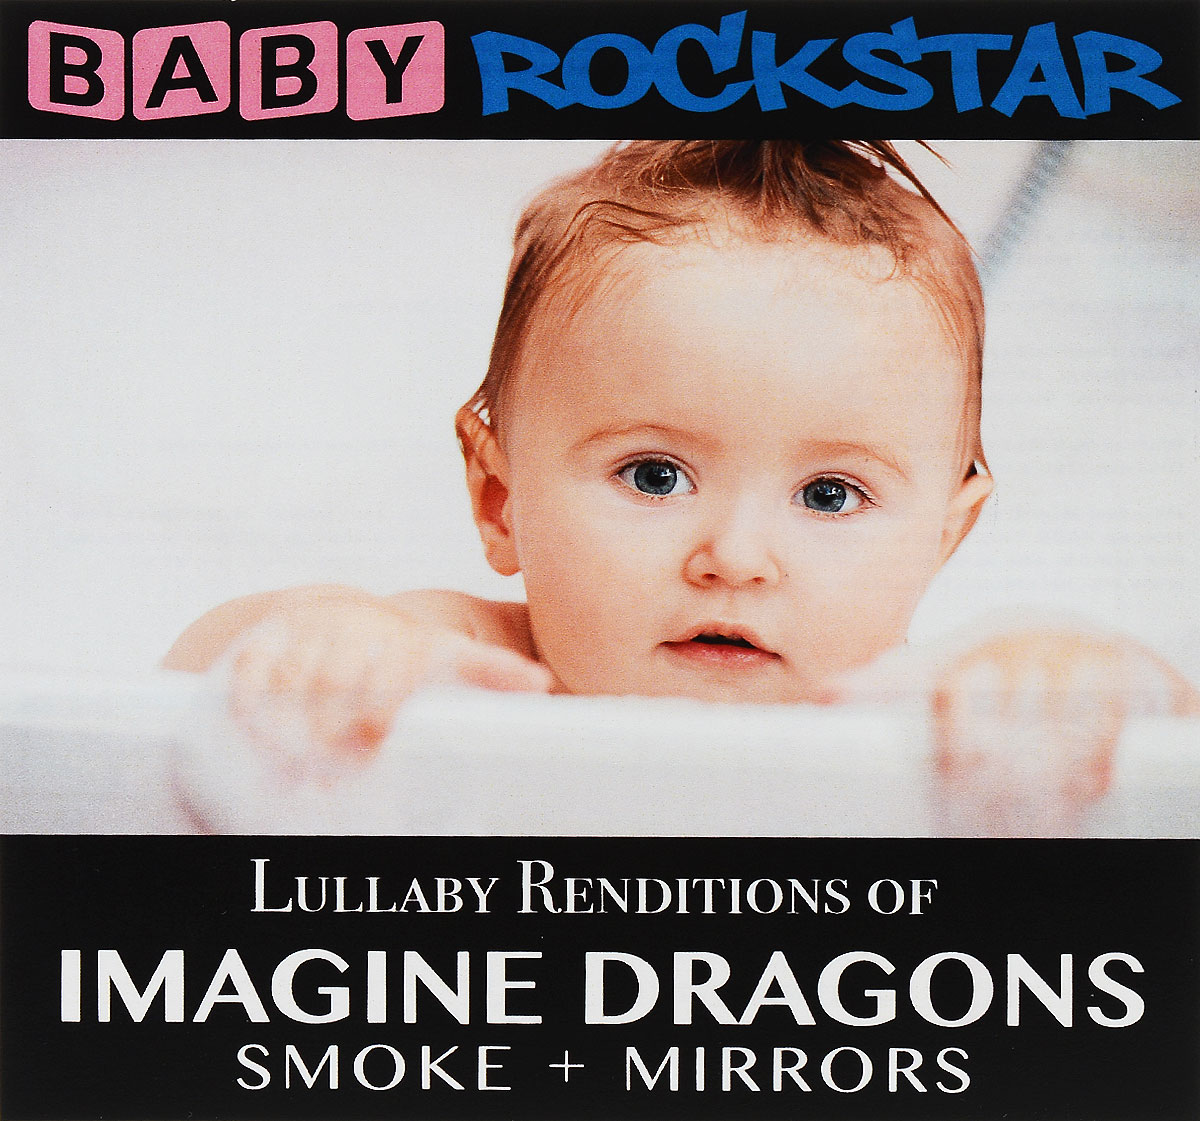 Baby Rockstar Baby Rockstar. Lullaby Renditions Of Imagine Dragons - Smoke + Mirrors цена и фото